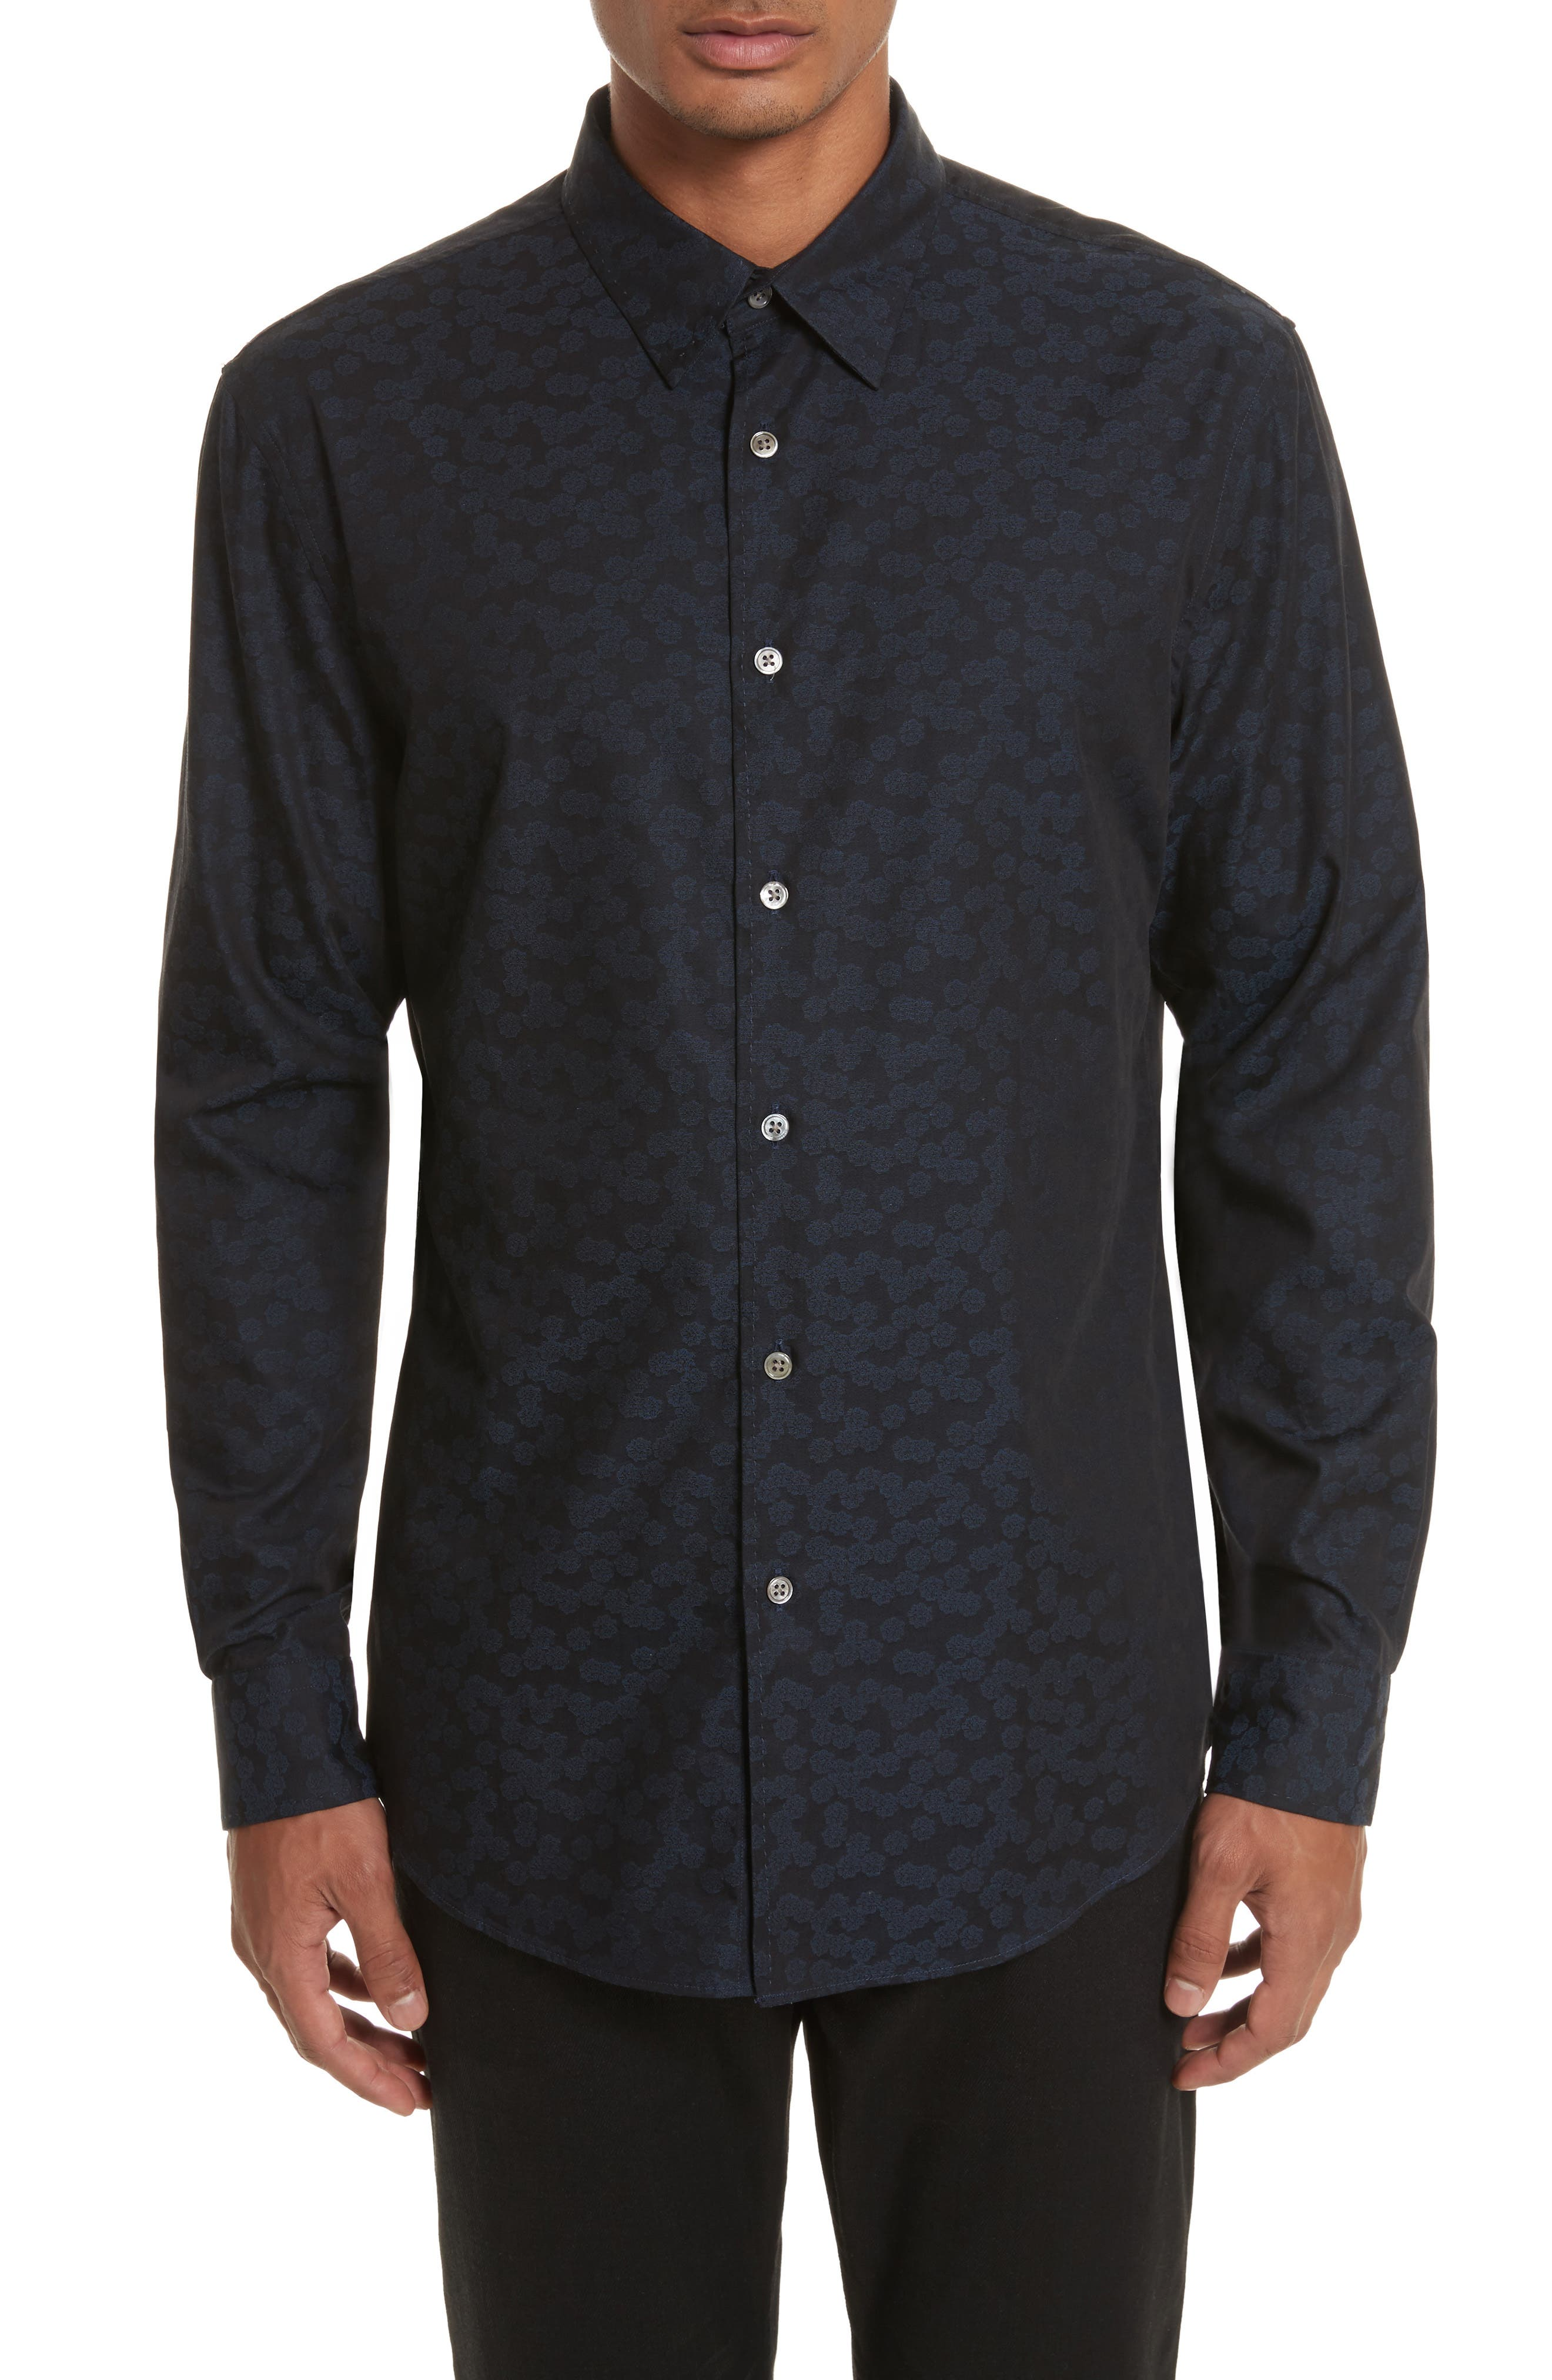 Alternate Image 1 Selected - John Varvatos Collection Classic Fit Jacquard Shirt